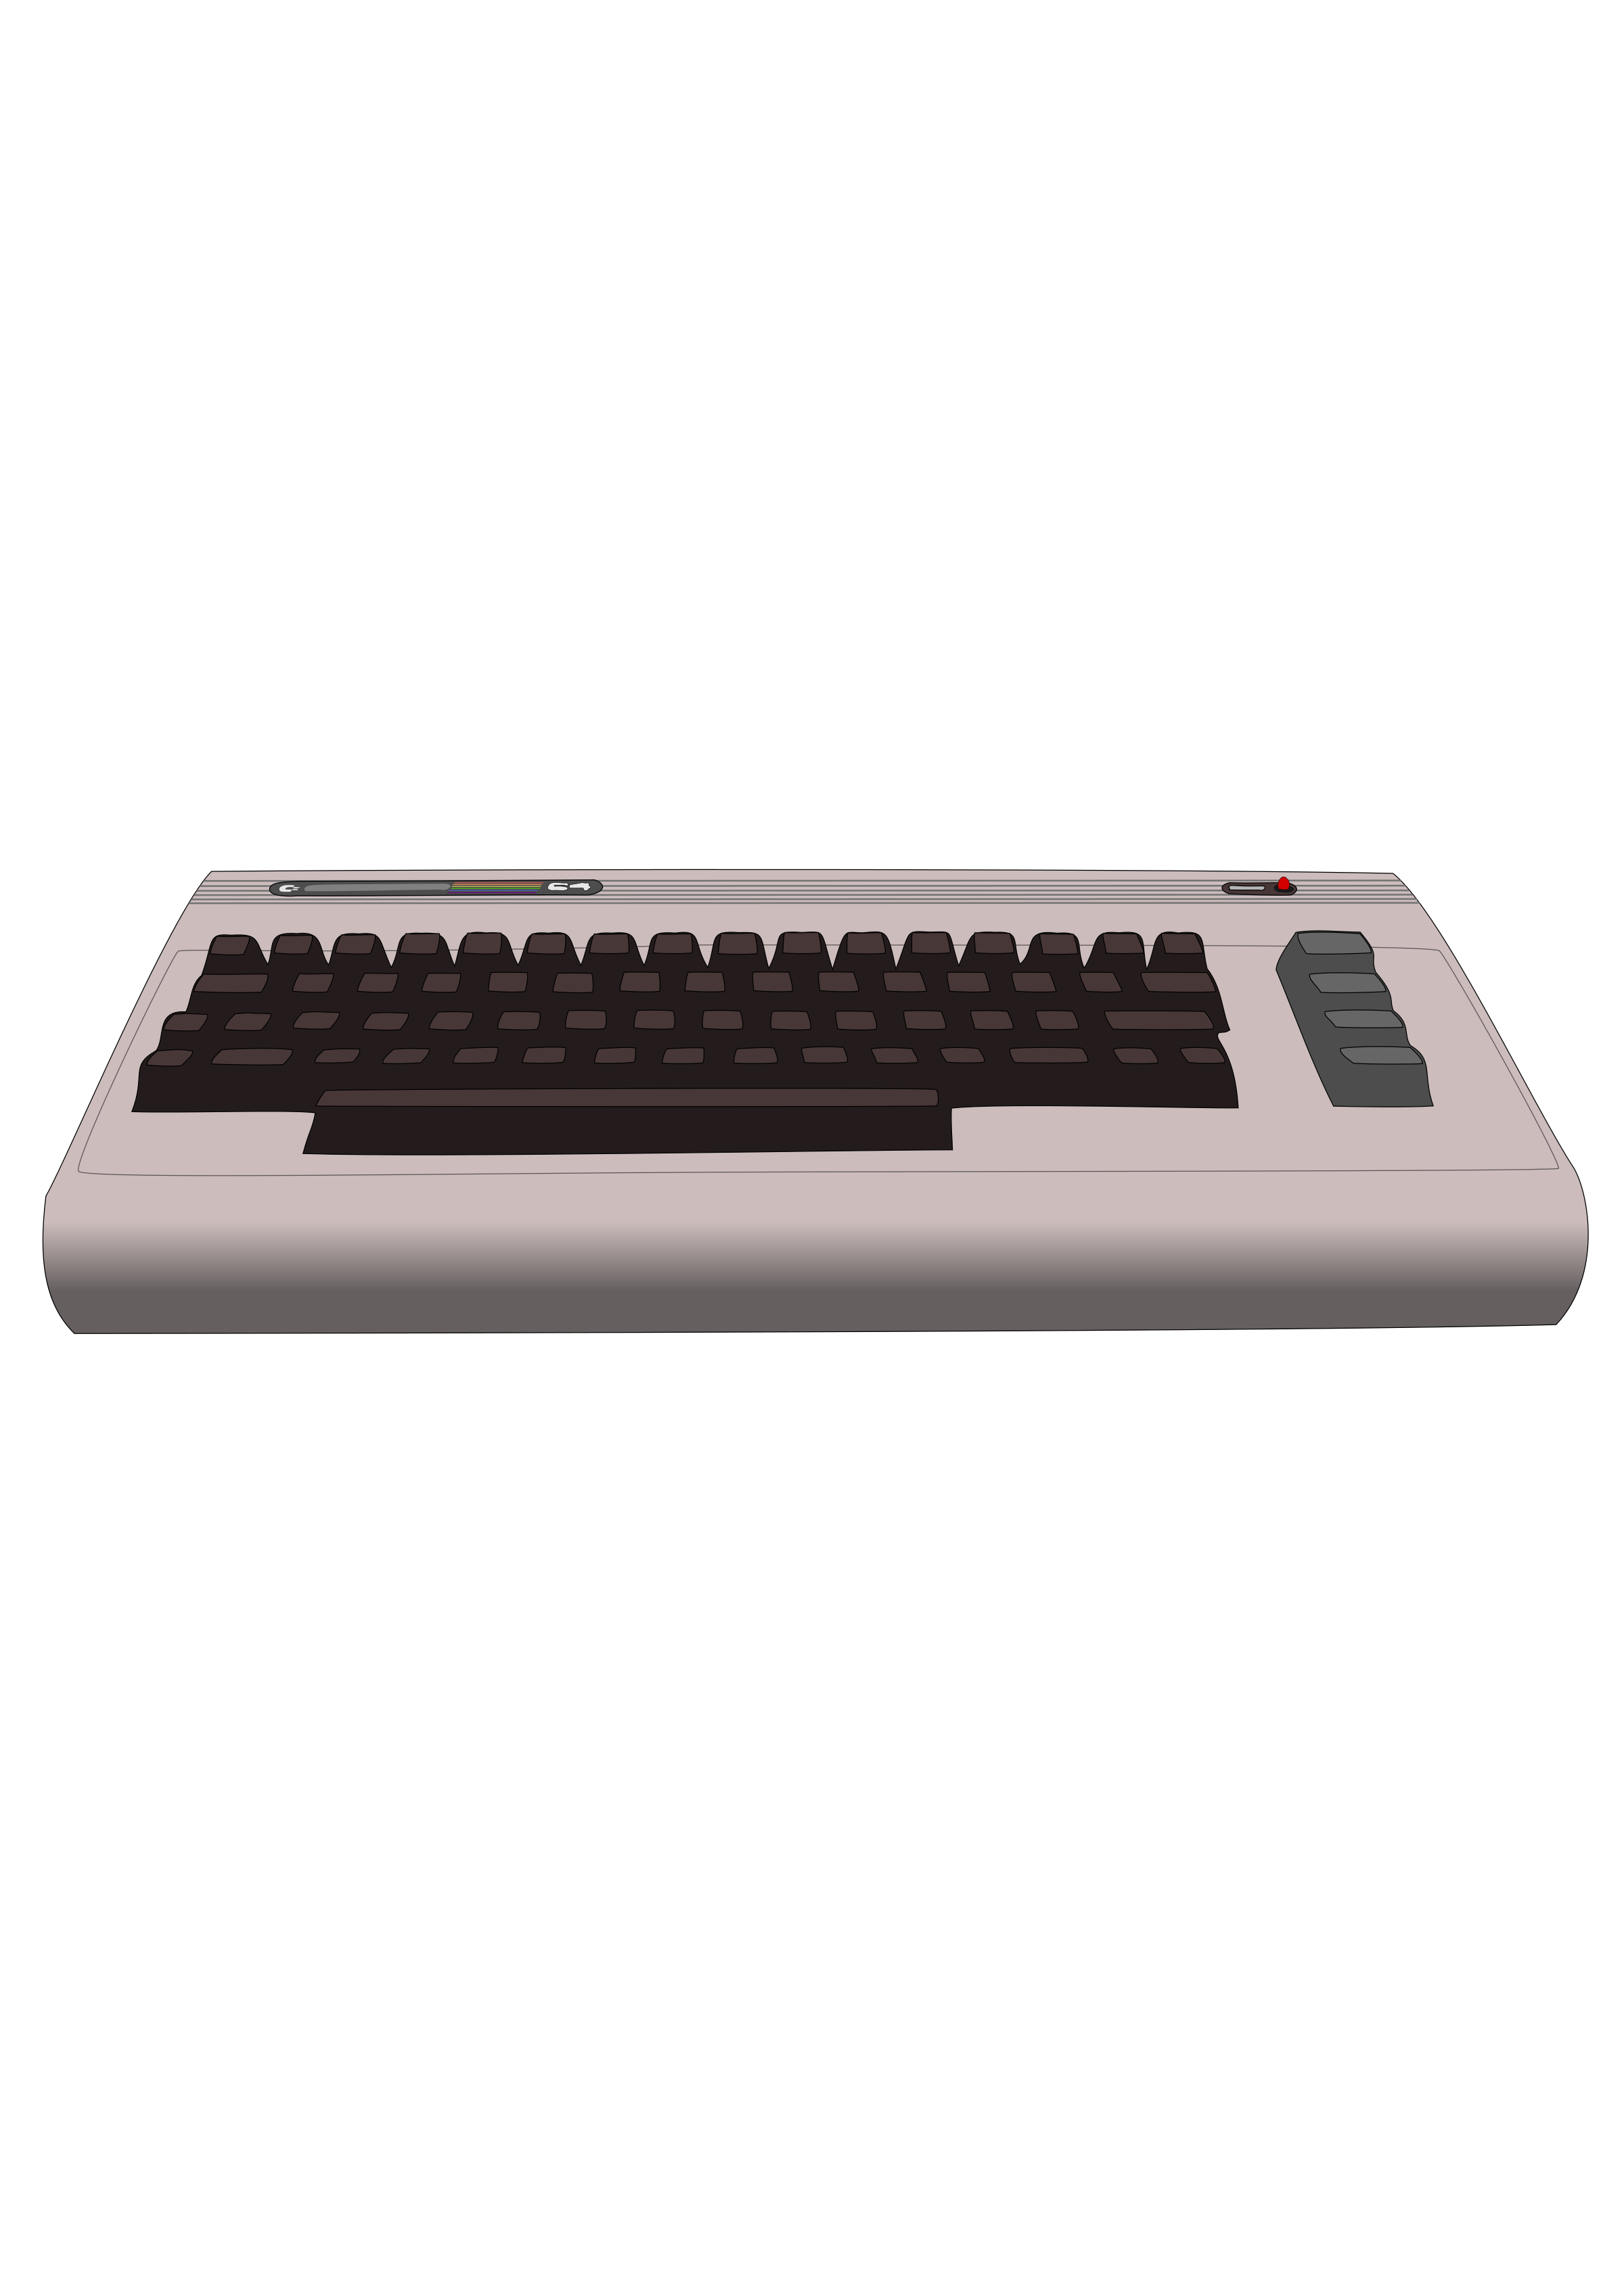 Commodore 64 Computer by larrymade